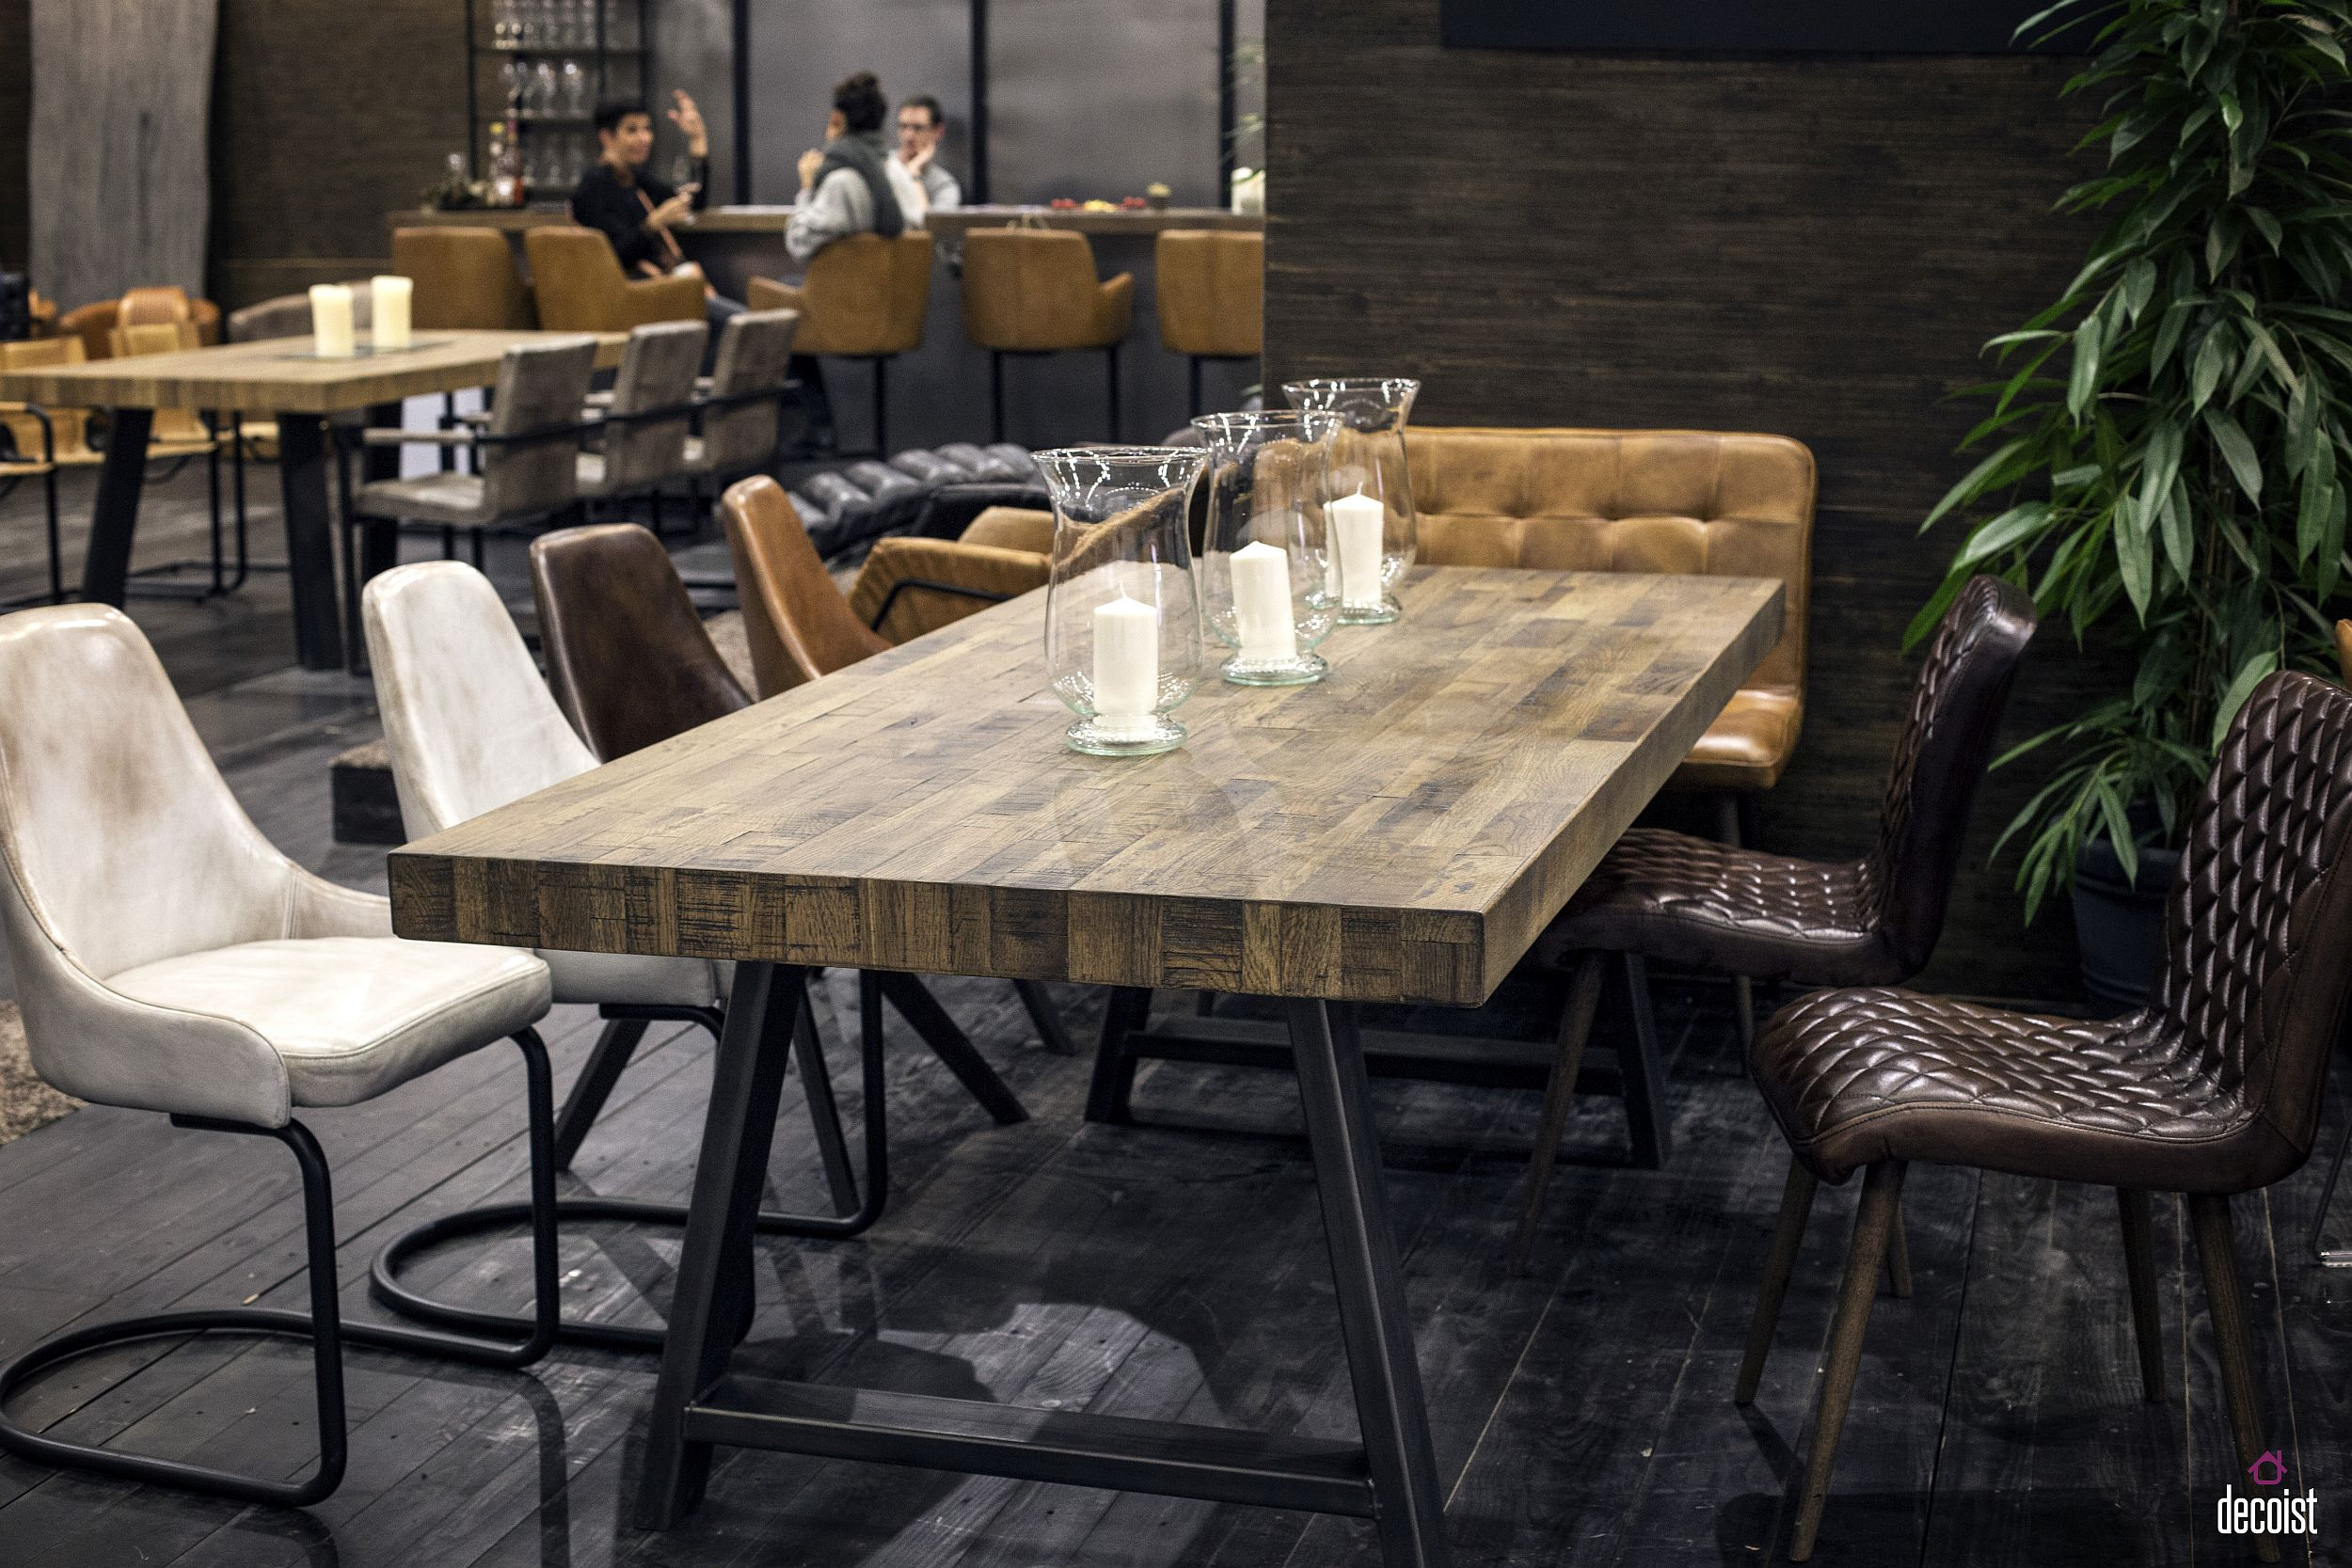 Unique surface of the wooden dining table steals the show here